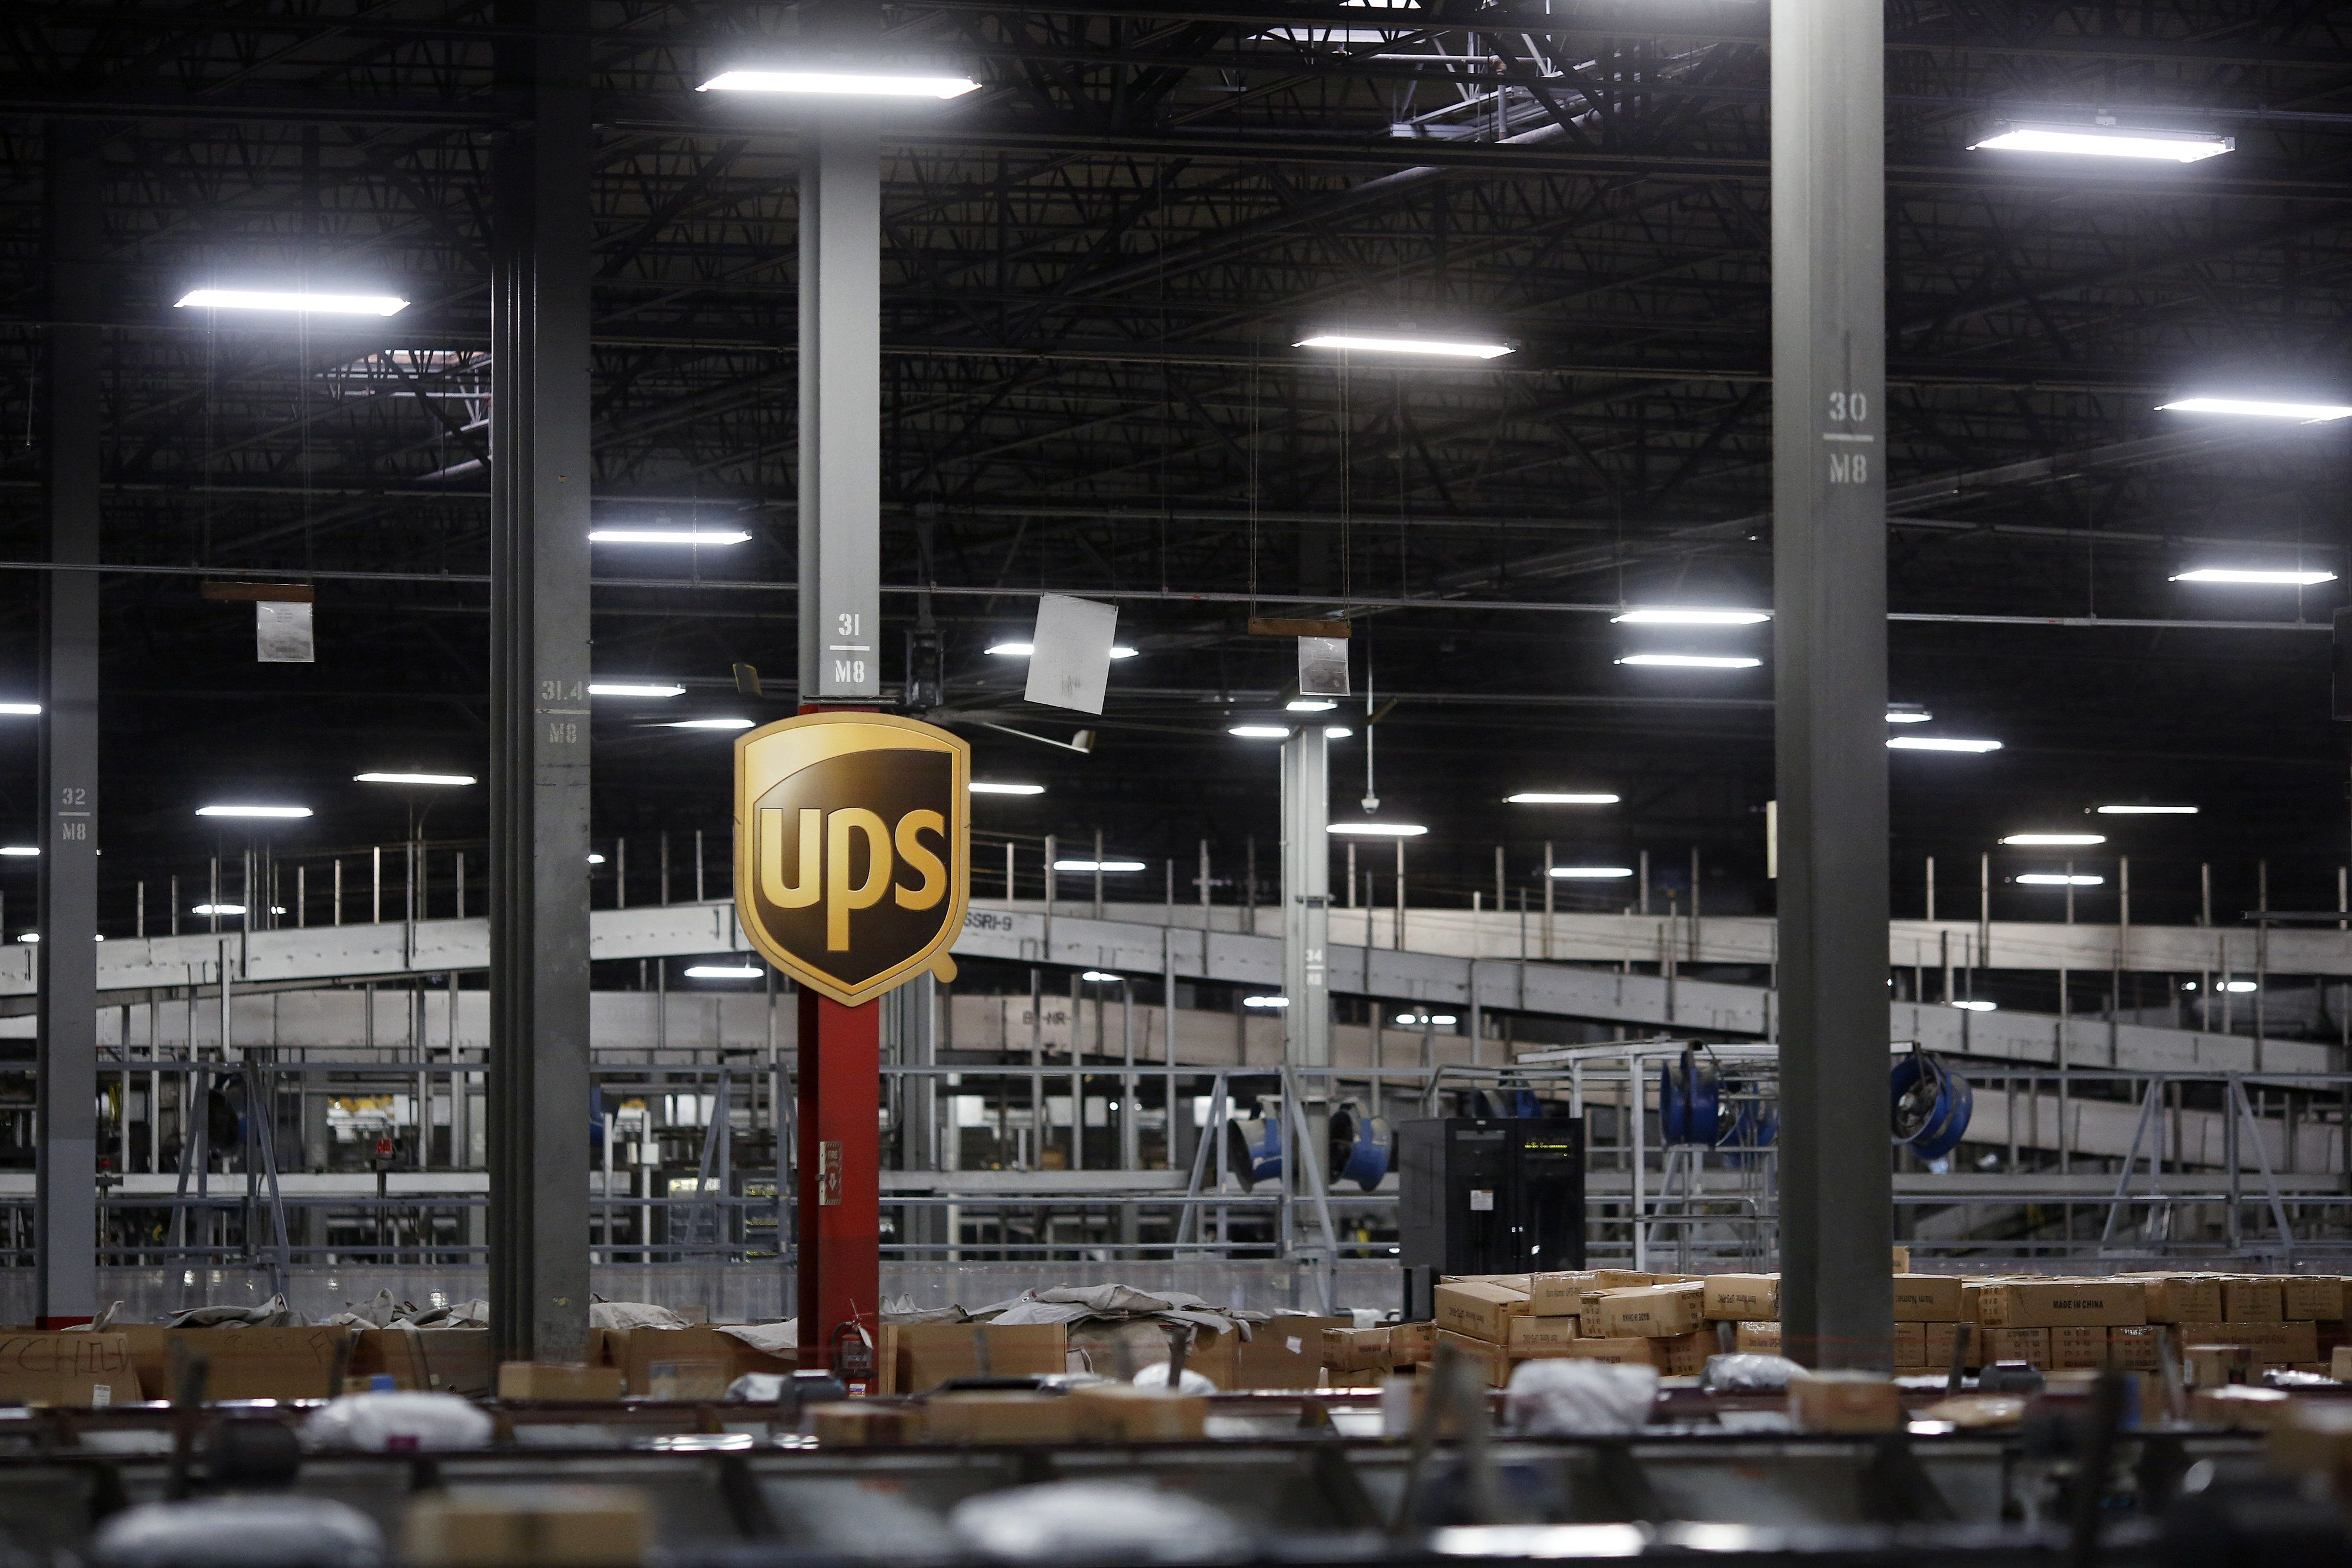 Packages move along conveyor belts at the United Parcel Service Inc. (UPS) Chicago Area Consolidation Hub (CACH) facility in Hodgkins, Illinois, U.S., on Monday, Nov. 28, 2016. Online stores are counting on shoppers to spend big during the 'Cyber Five' period from Thanksgiving to Cyber Monday to make up for time spent earlier this month obsessing about the presidential election instead. Photographer: Luke Sharrett/Bloomberg via Getty Images